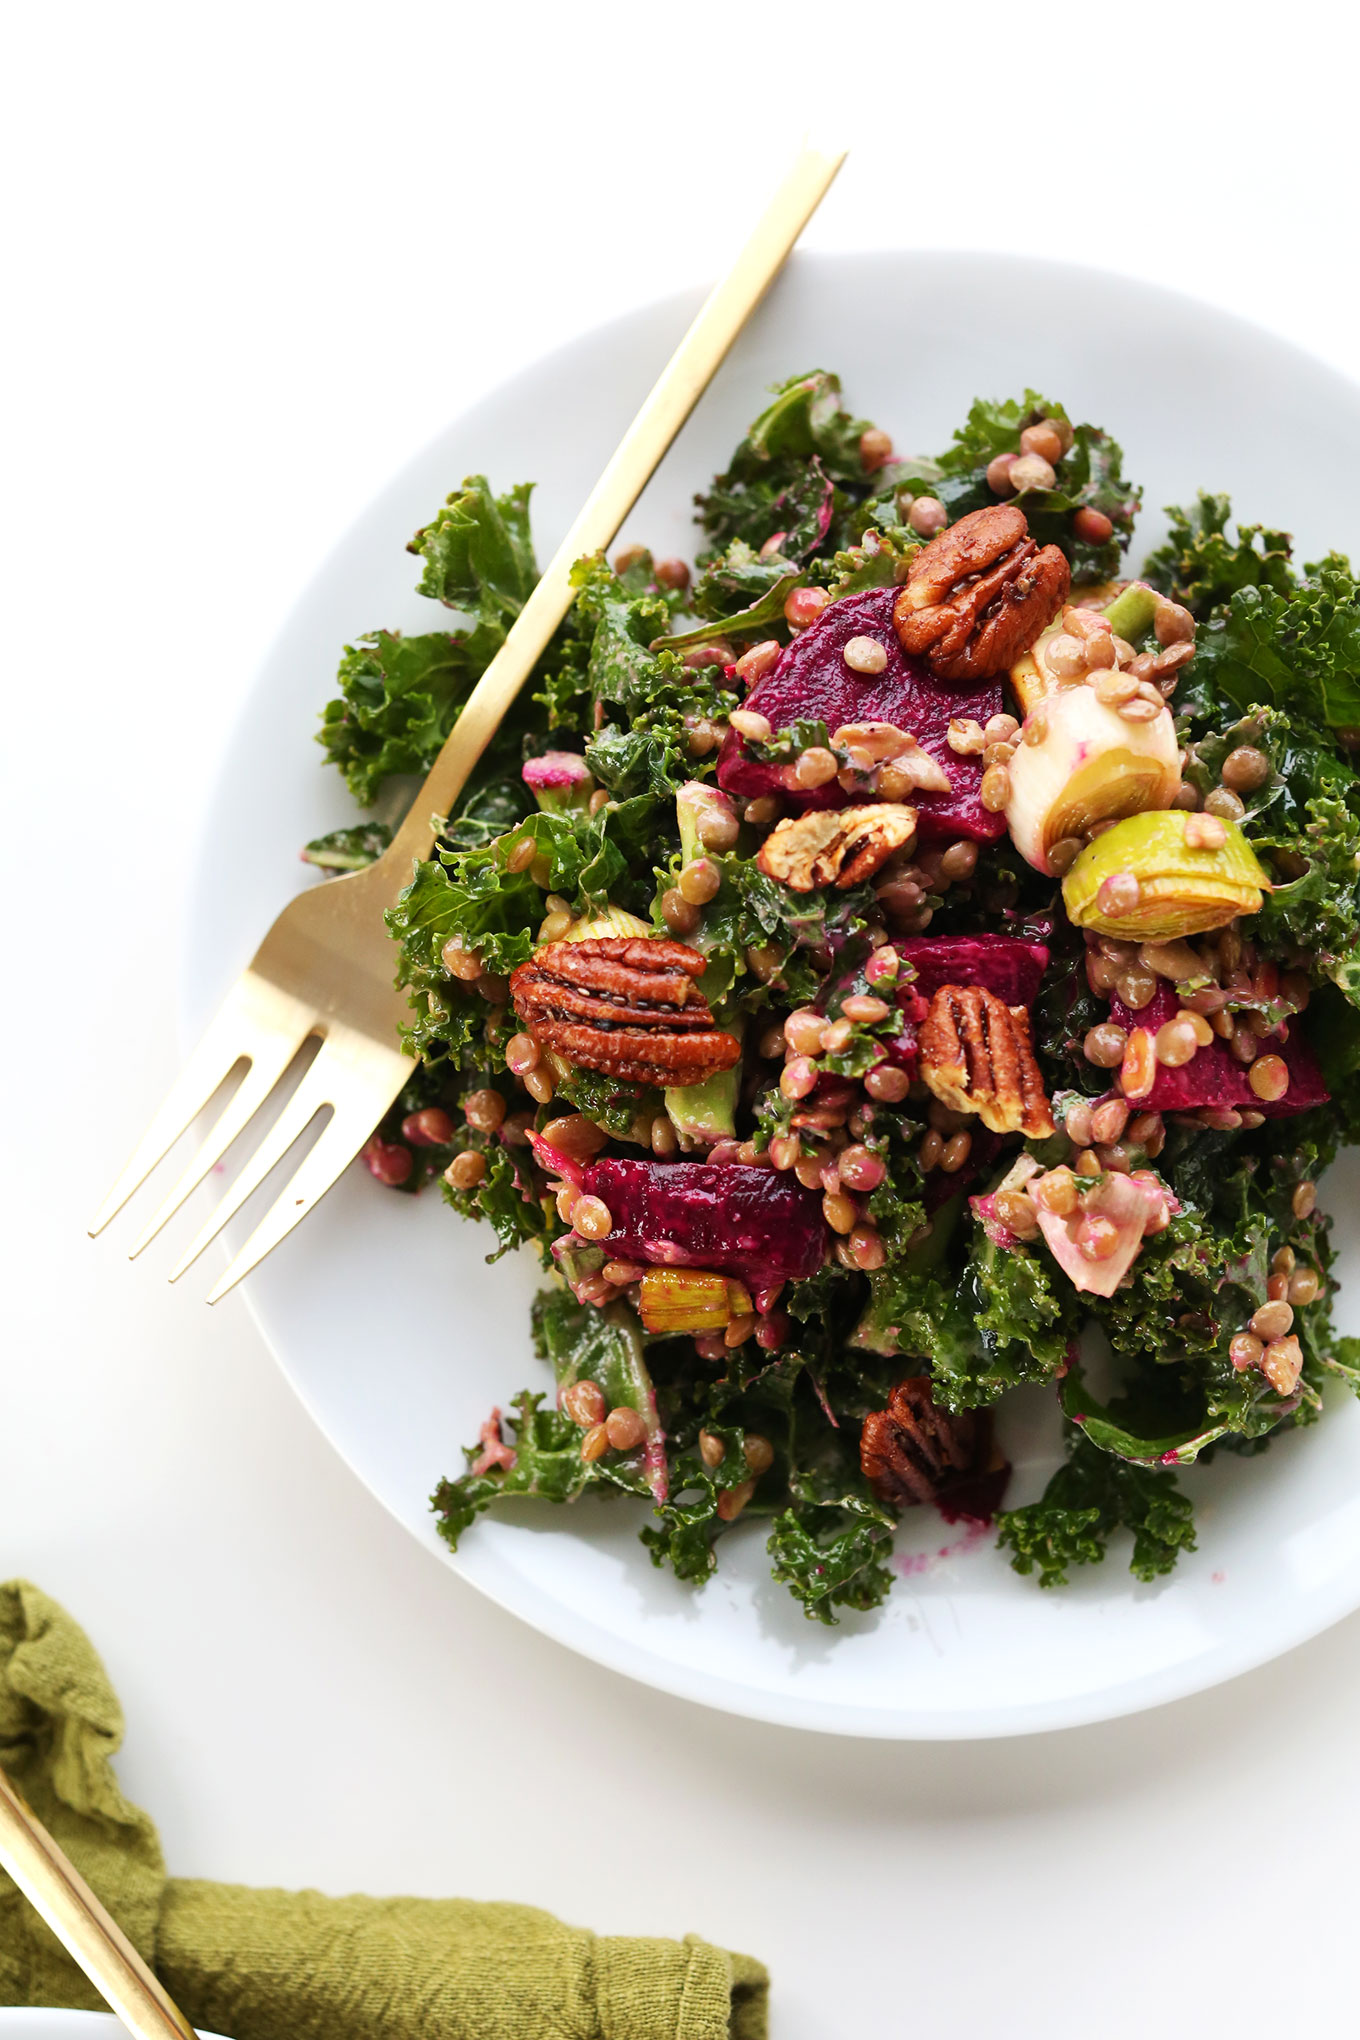 Big plate of healthy and satisfying Kale, Lentil, Roasted Beet Salad